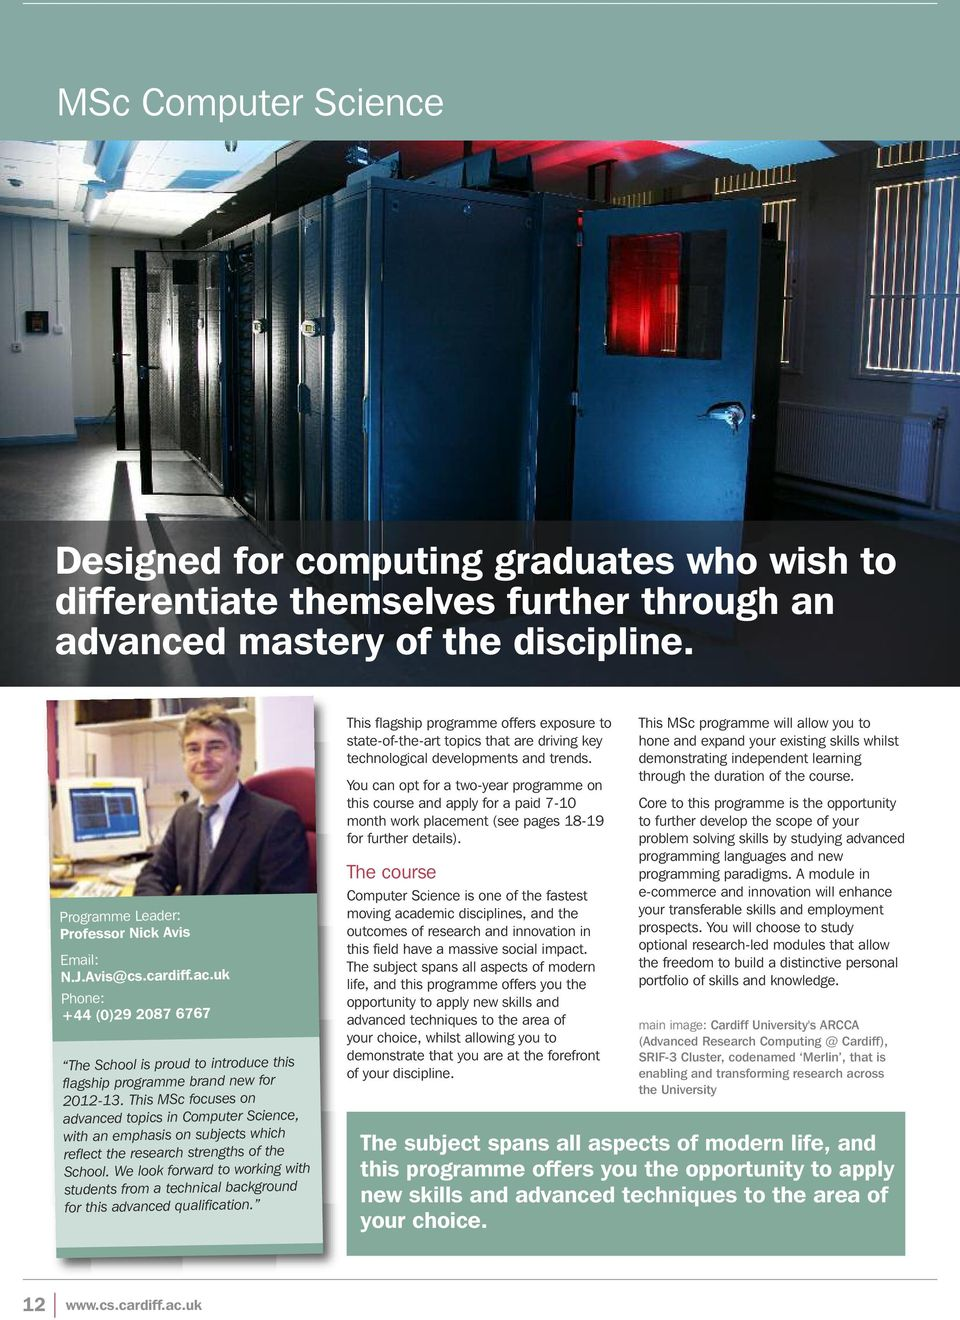 This MSc focuses on advanced topics in Computer Science, with an emphasis on subjects which reflect the research strengths of the School.